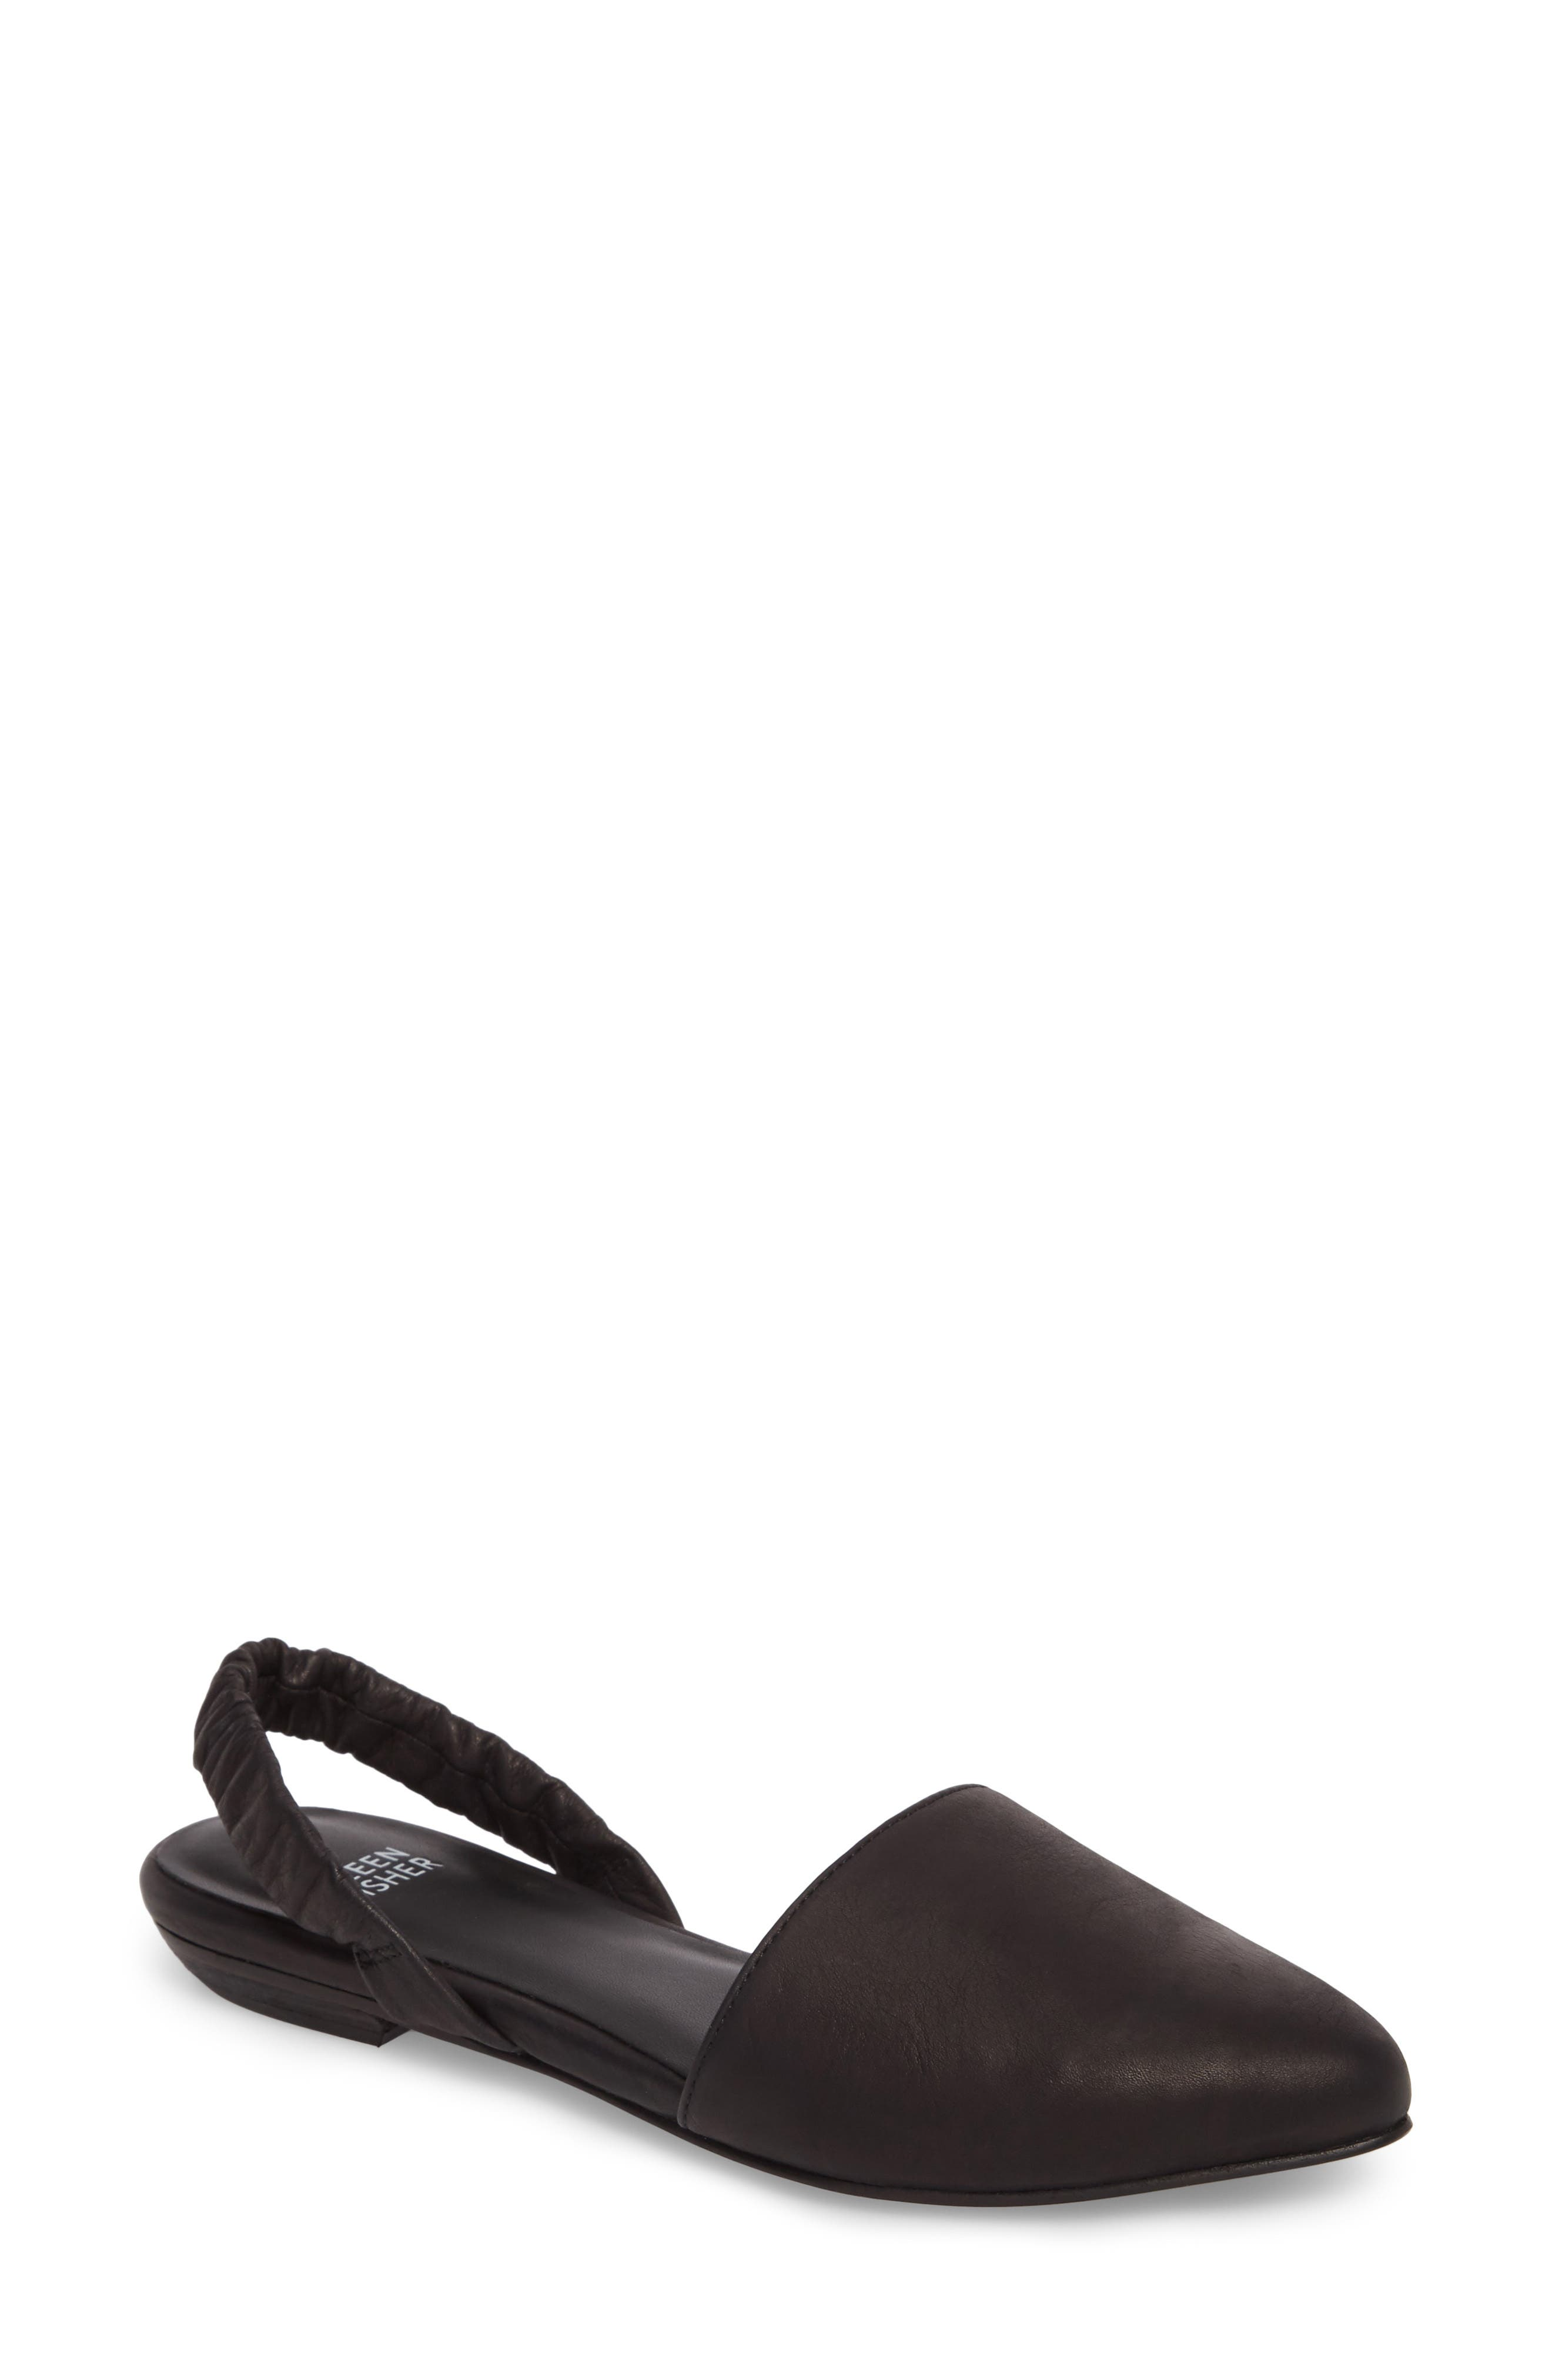 Alternate Image 1 Selected - Eileen Fisher Tula Slingback Flat (Women)